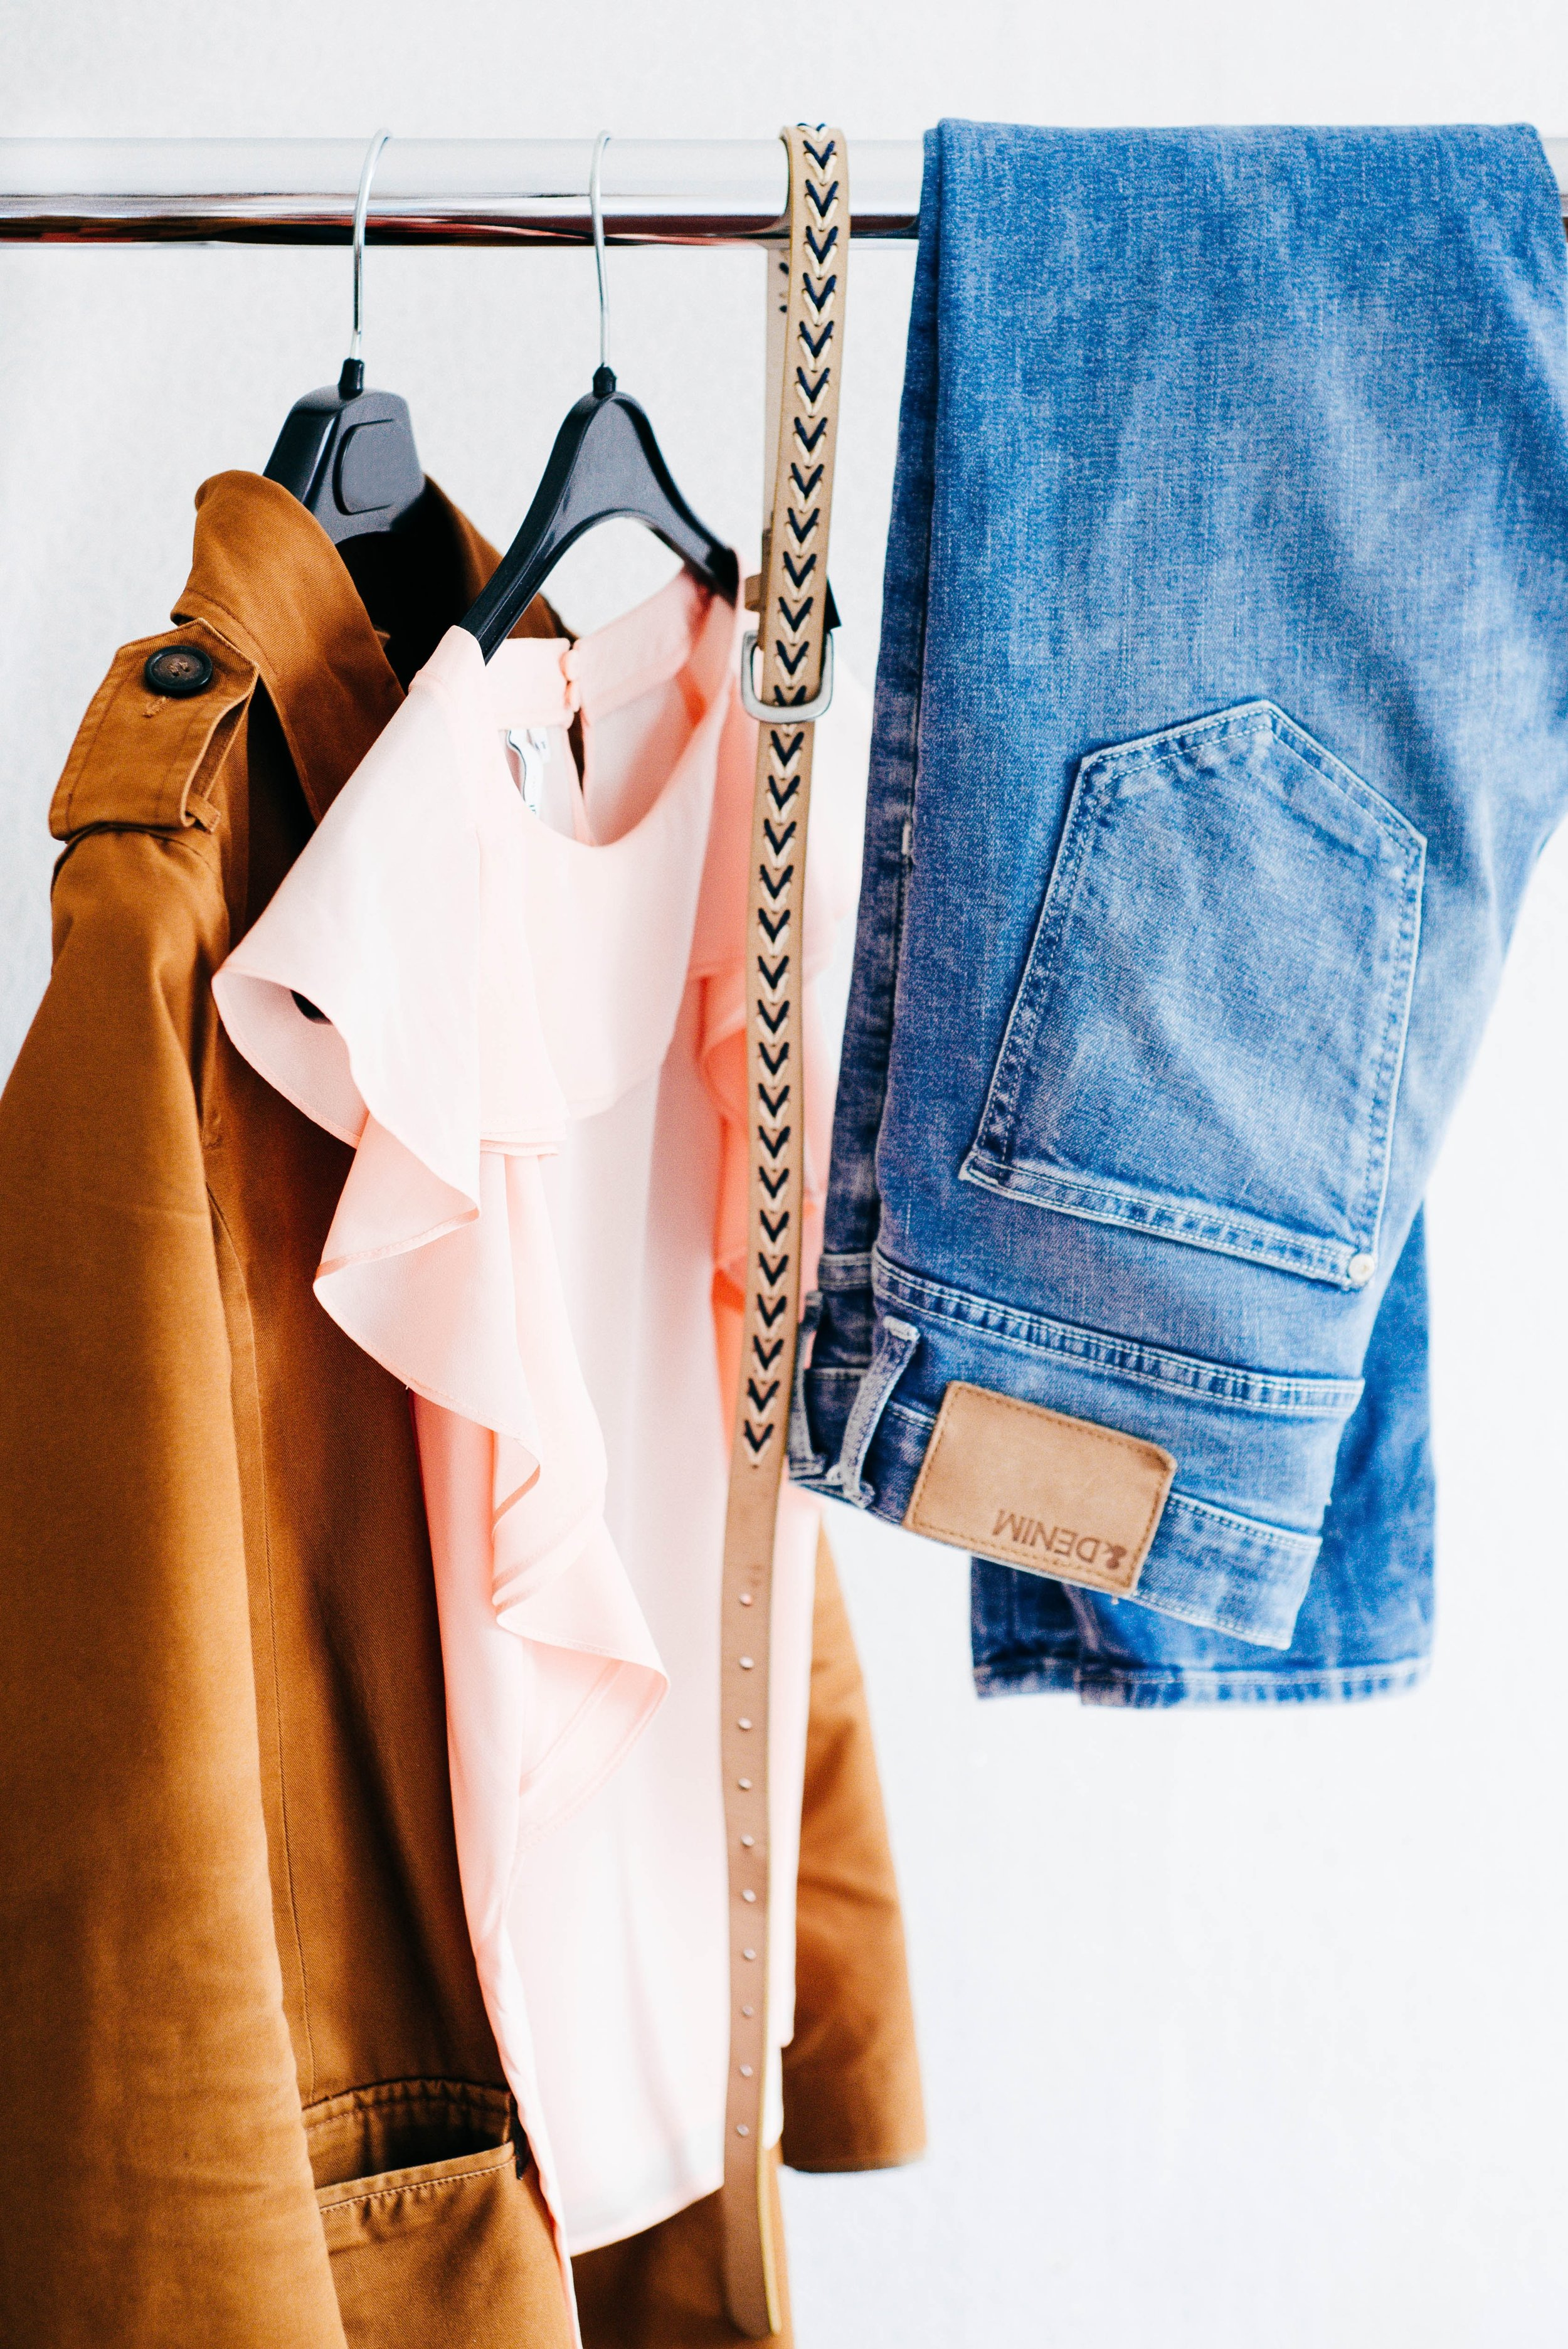 Determine your needs - Need a refresh on closet staples or guidance on closet staples that suit your lifestyle? Looking to add trendier items to your closet? Want to breakout from wearing things the same way? Once we determine your goal(s) we can create a custom package to achieve your needs.